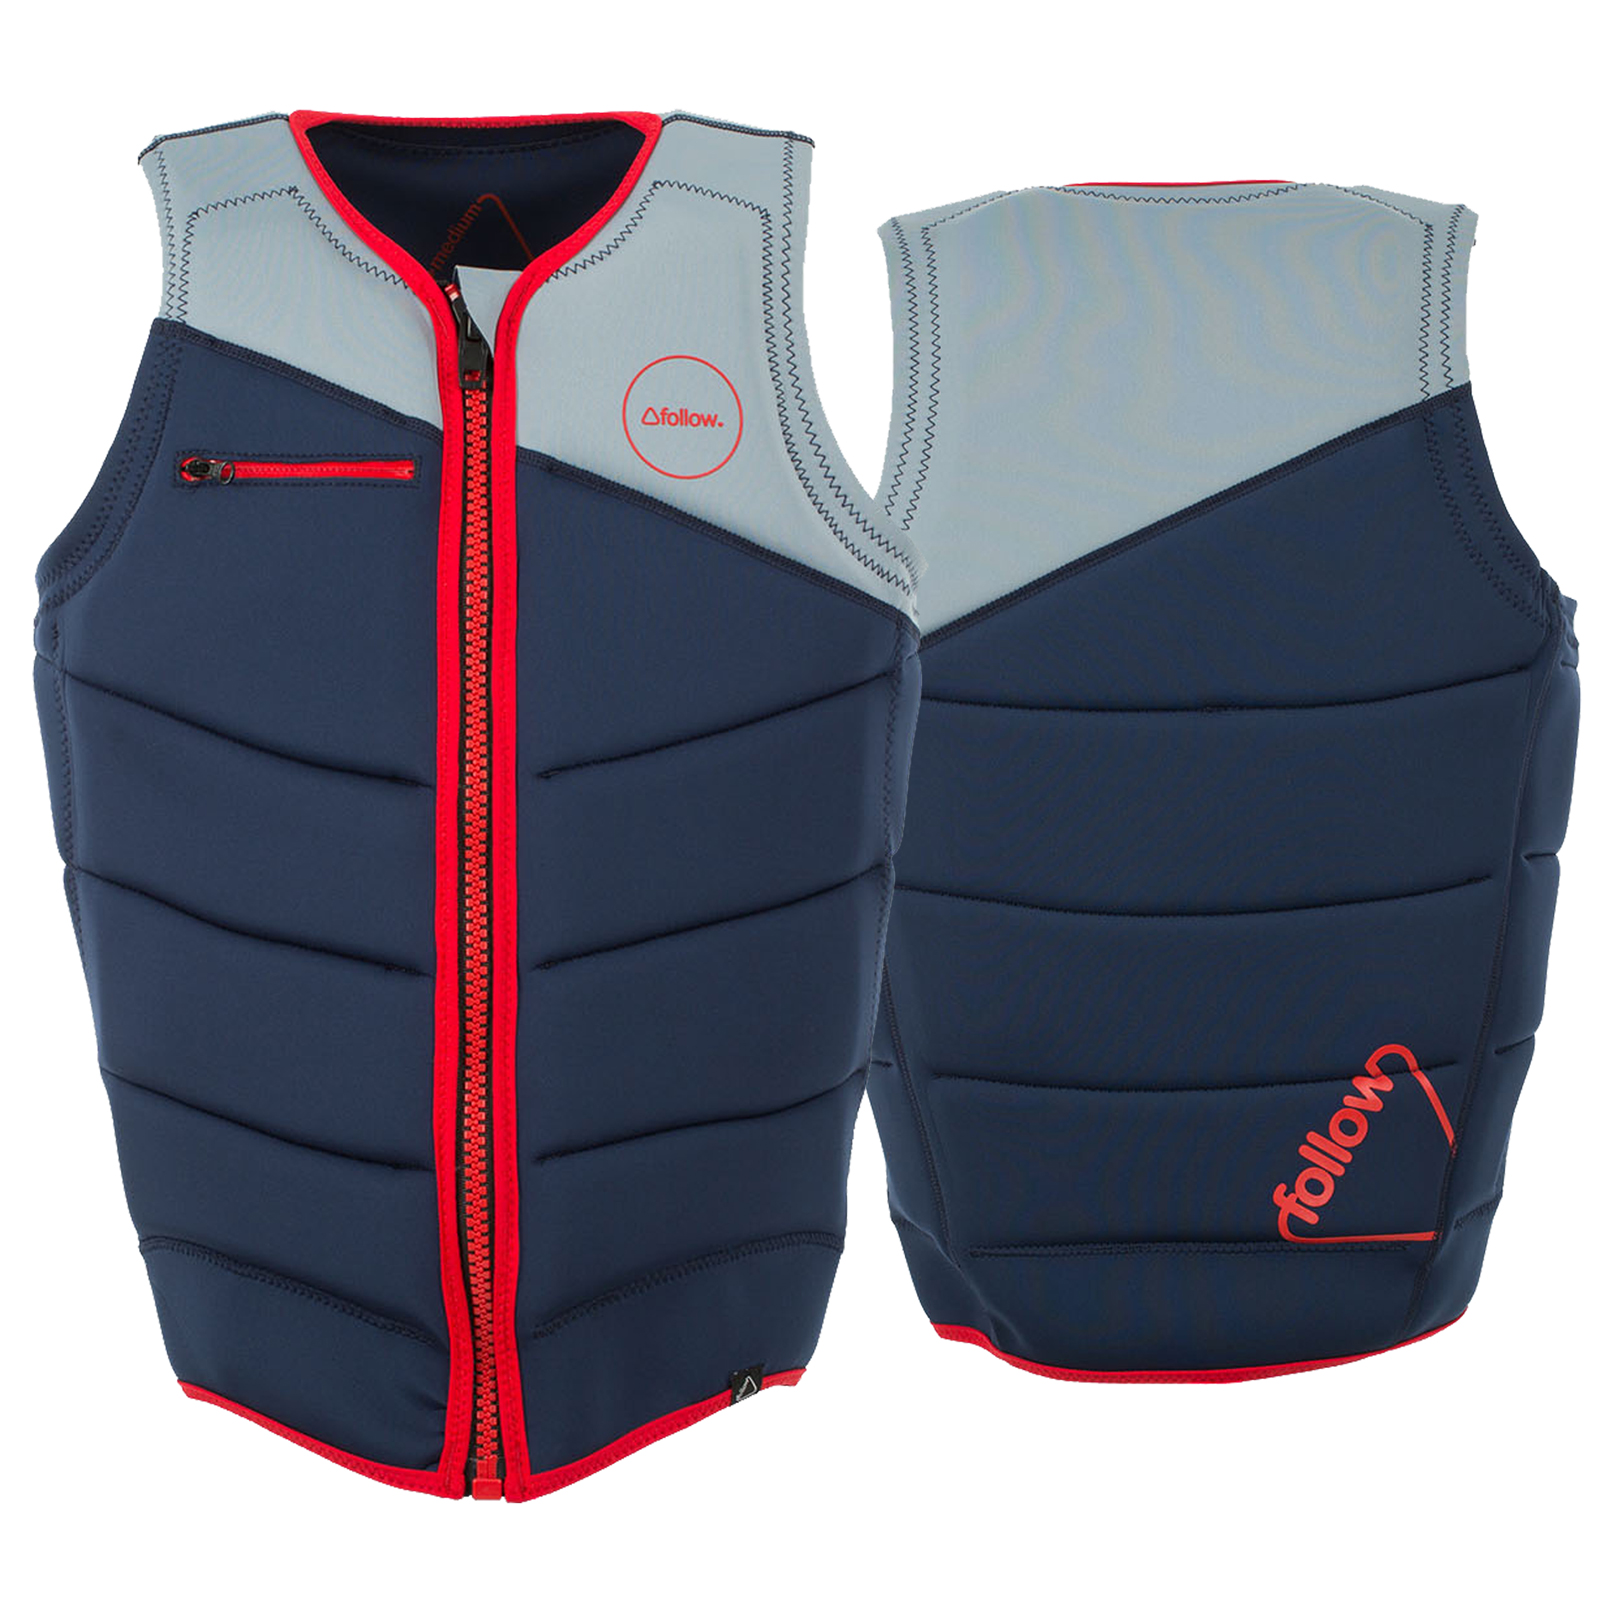 CINCH PRO IMPACT VEST NAVY/GREY FOLLOW 2017